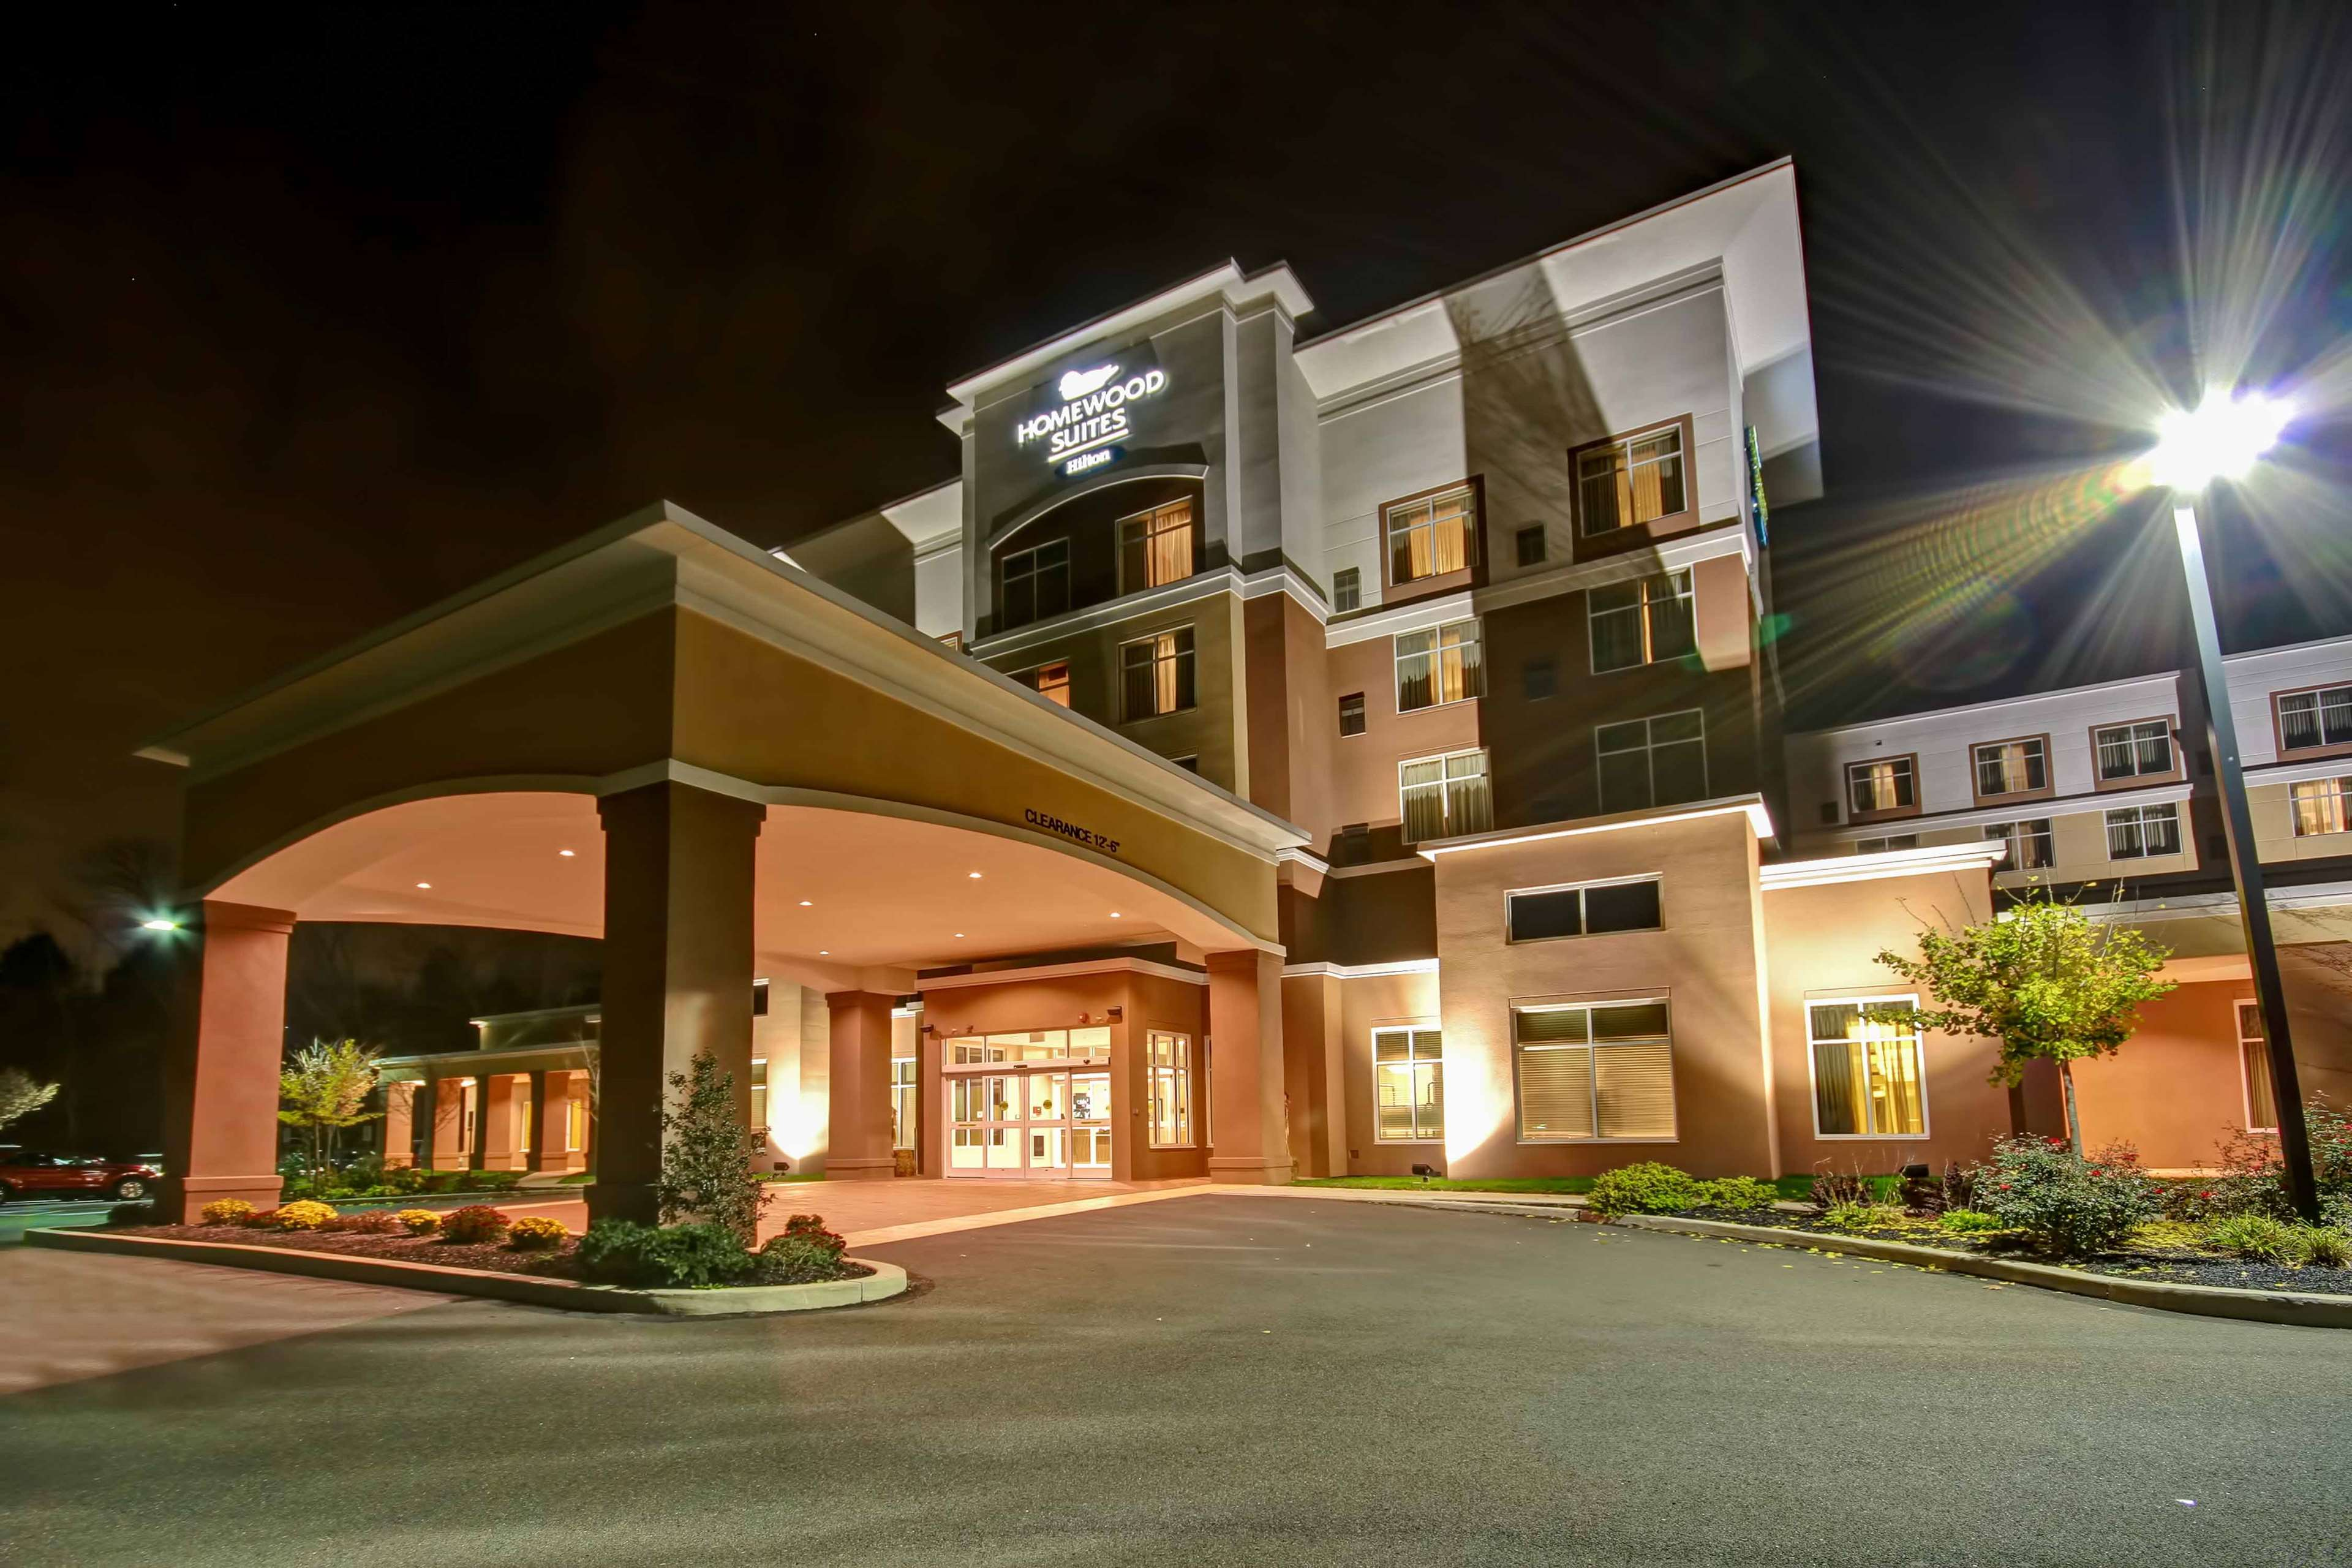 Homewood Suites by Hilton Doylestown, PA